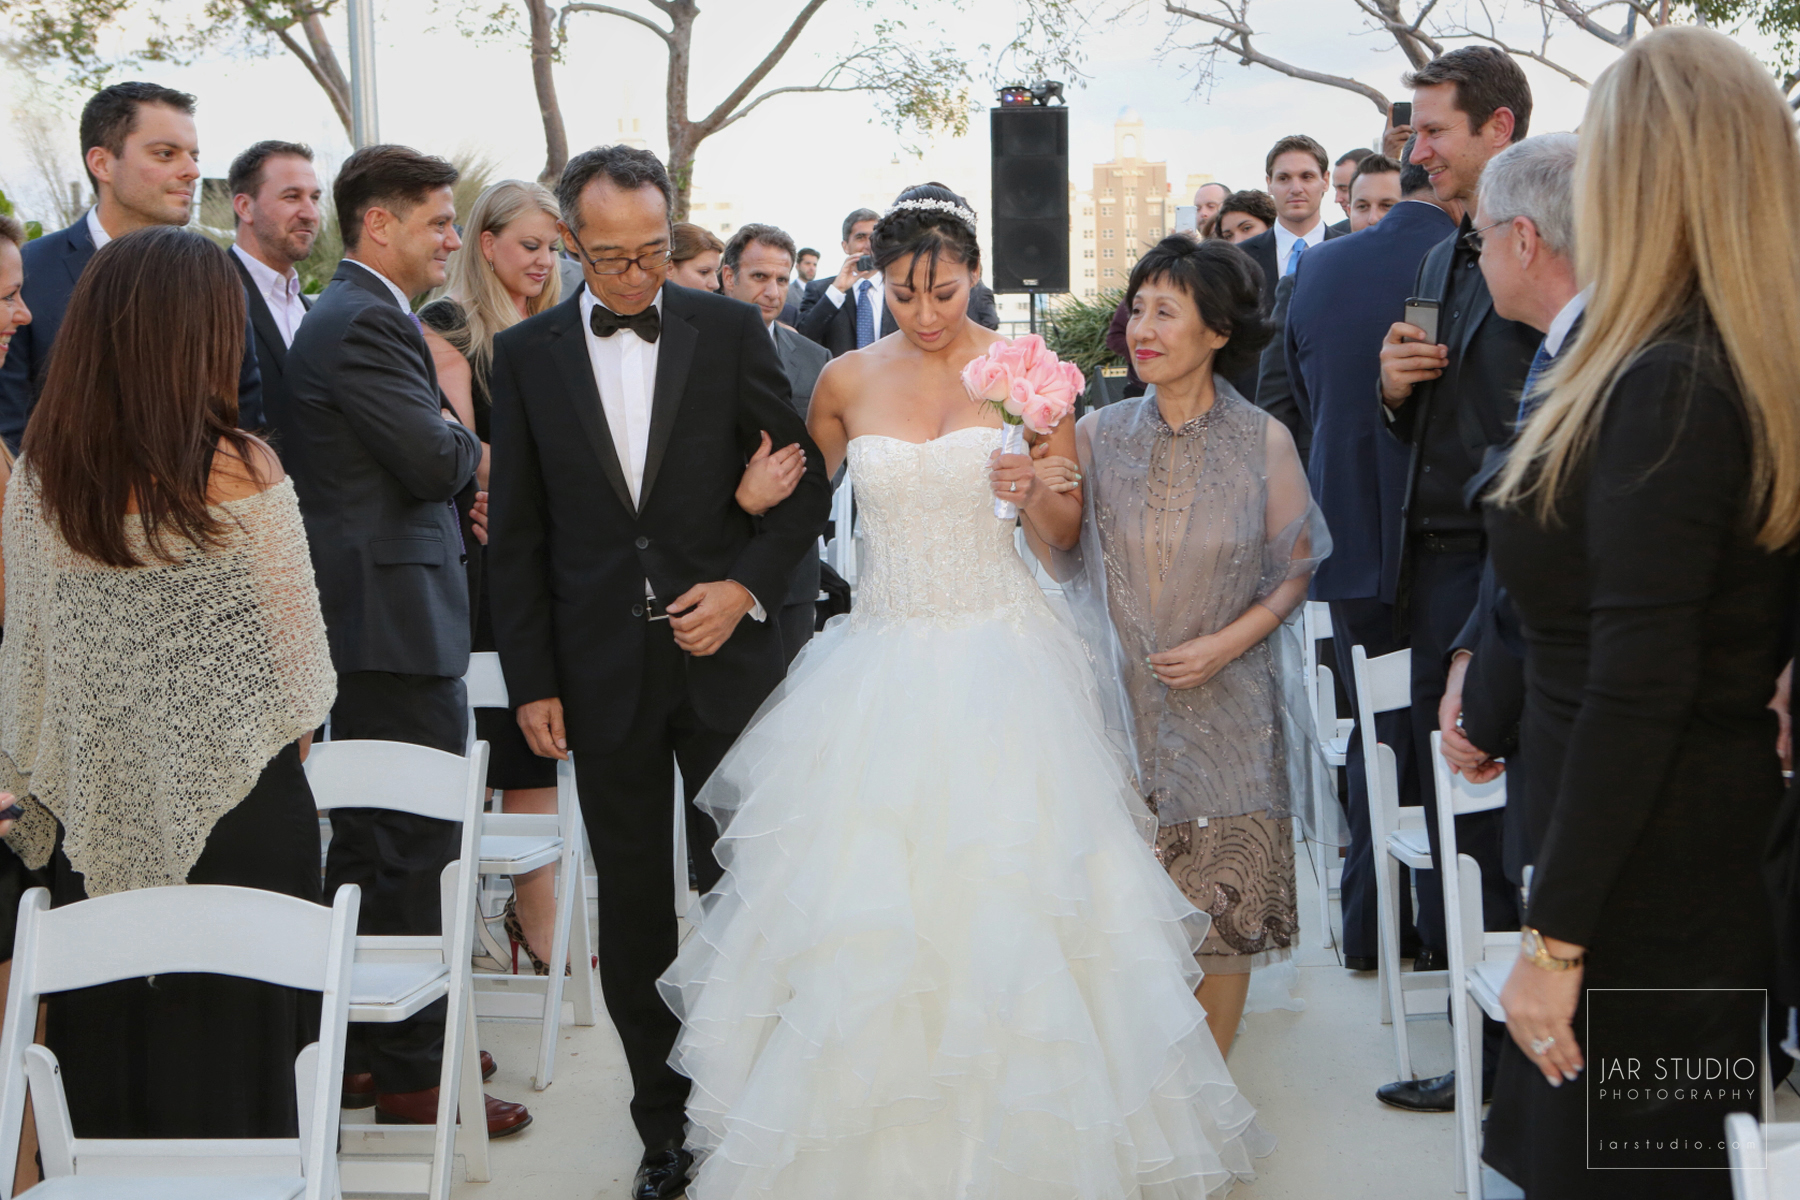 22-chinese-american-wedding-ceremony-jarstudio-photographer-orlando.JPG